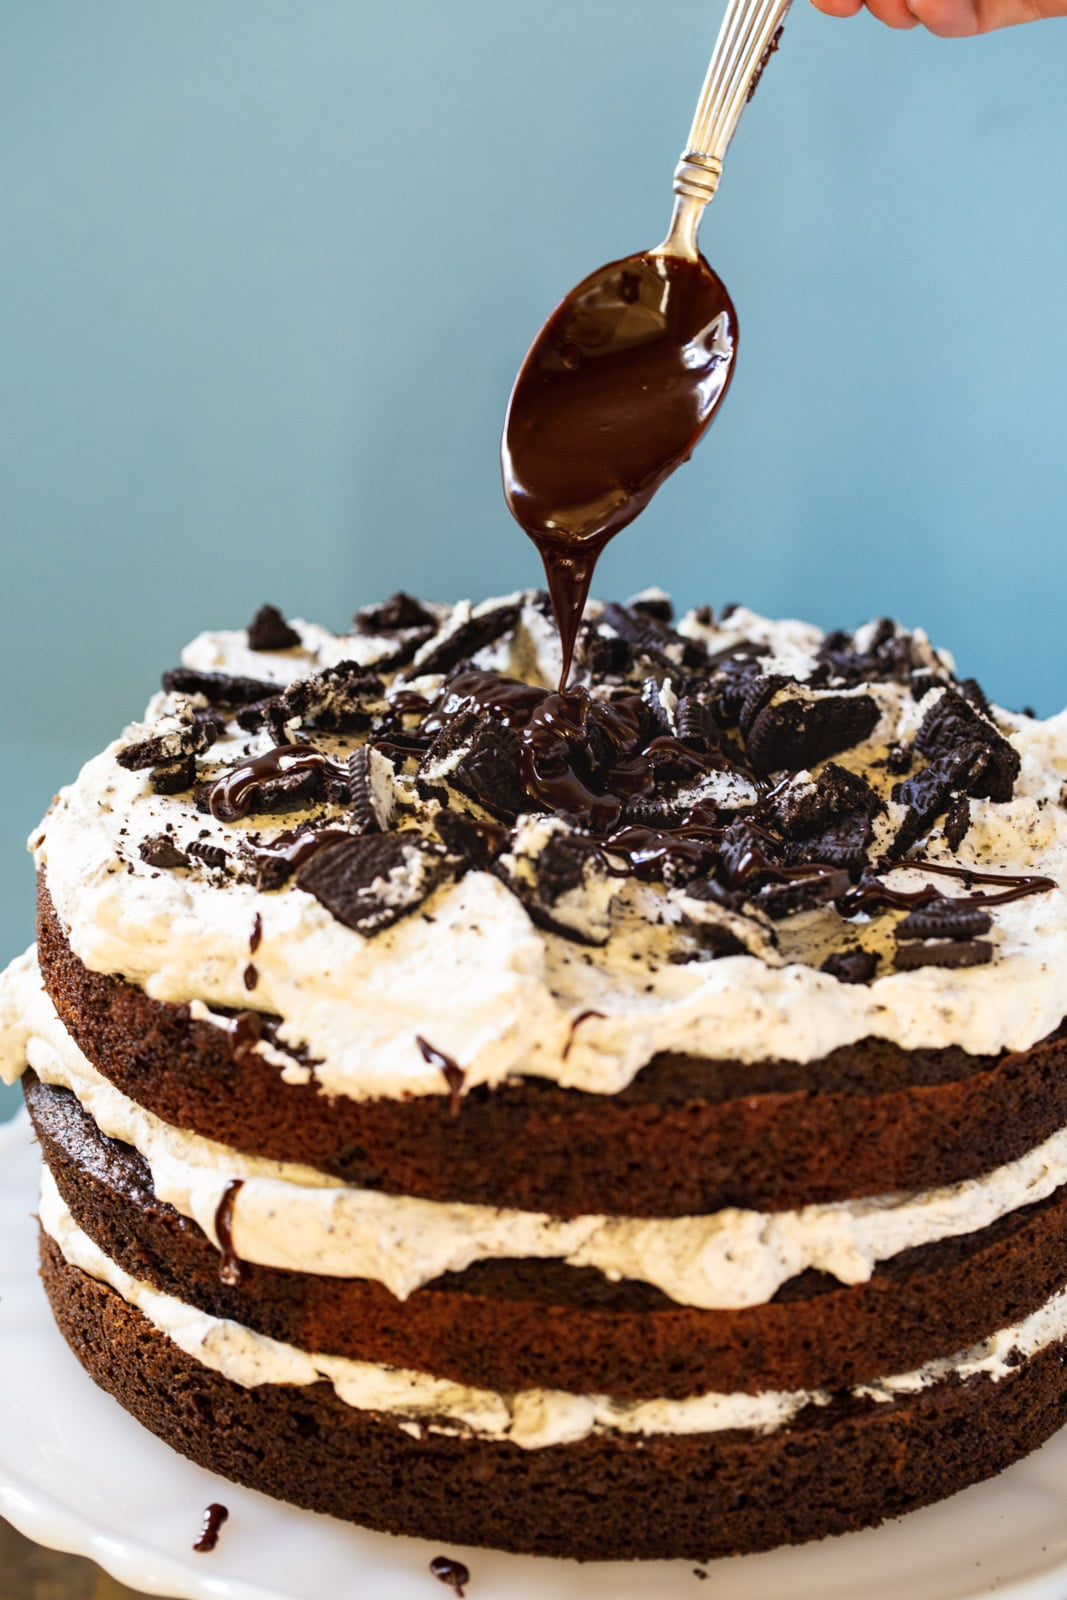 Spoon drizzling chocolate on Mississippi Mudslide Cake.